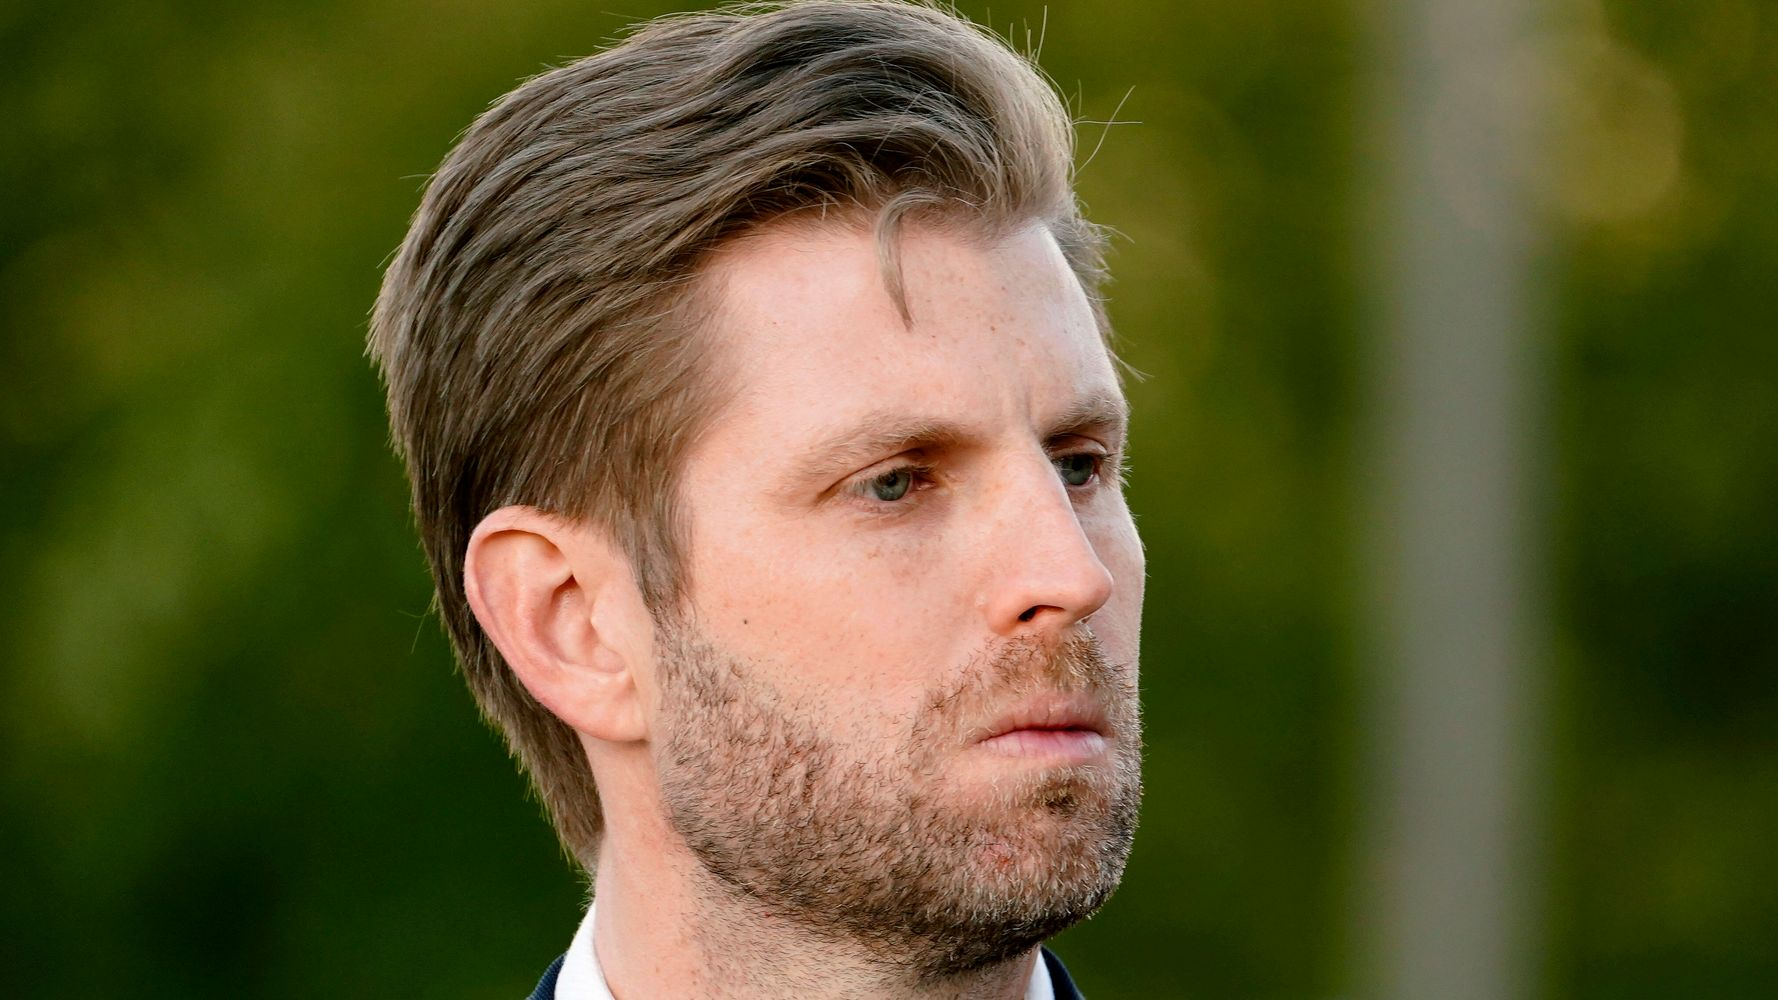 Eric Trump Becomes Twitter Laughingstock After Urging People To Vote… 1 Week Late